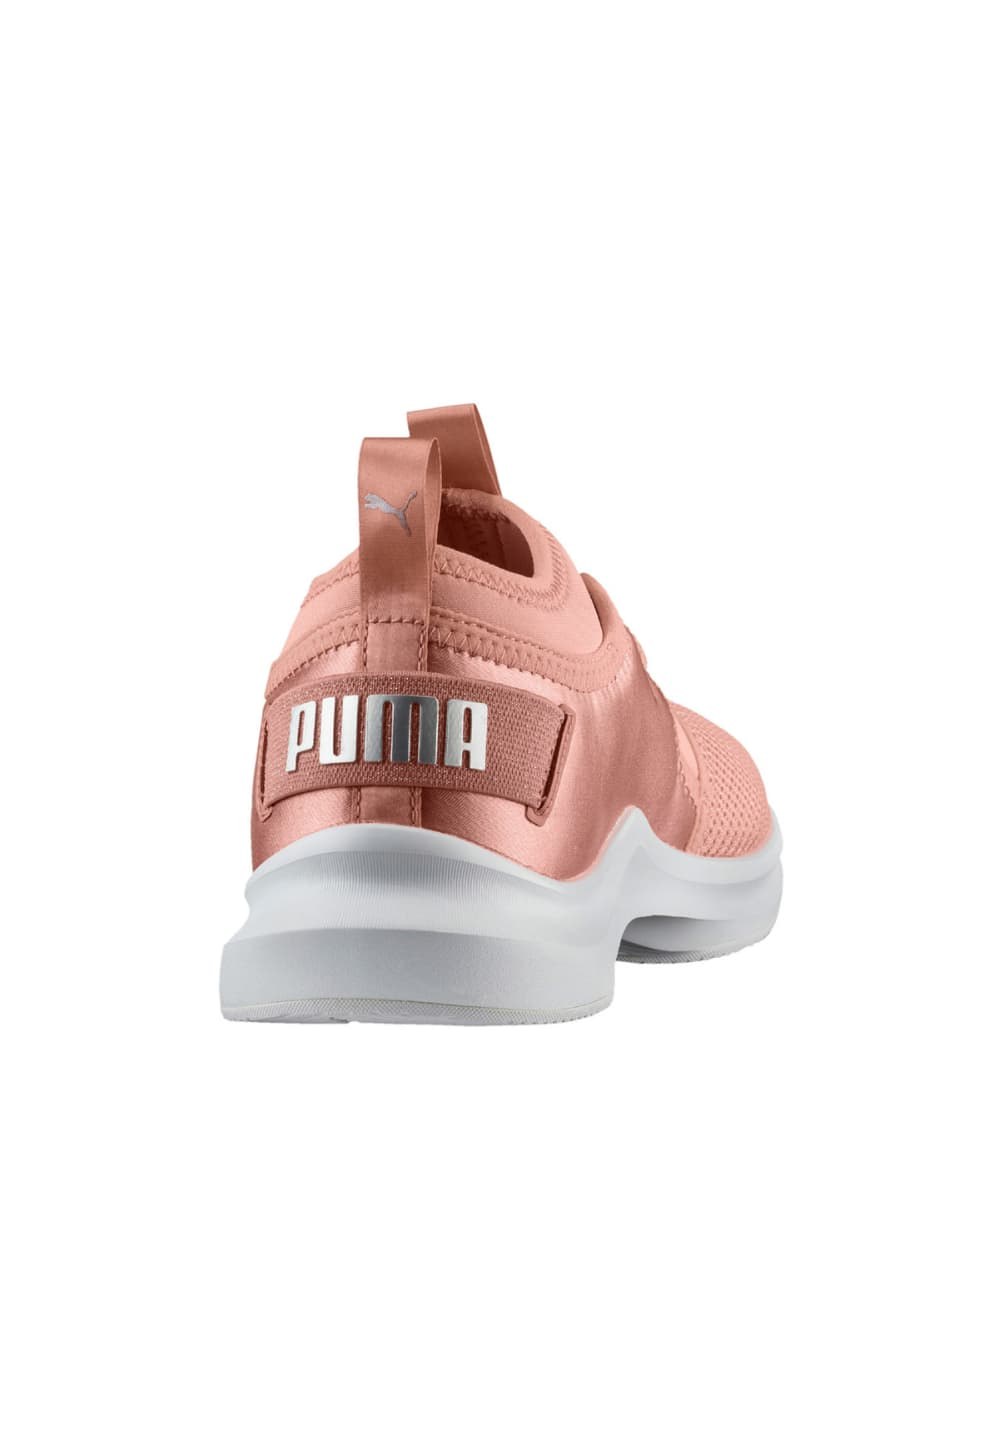 Puma Phenom Low Satin EP Chaussures fitness pour Femme Rose